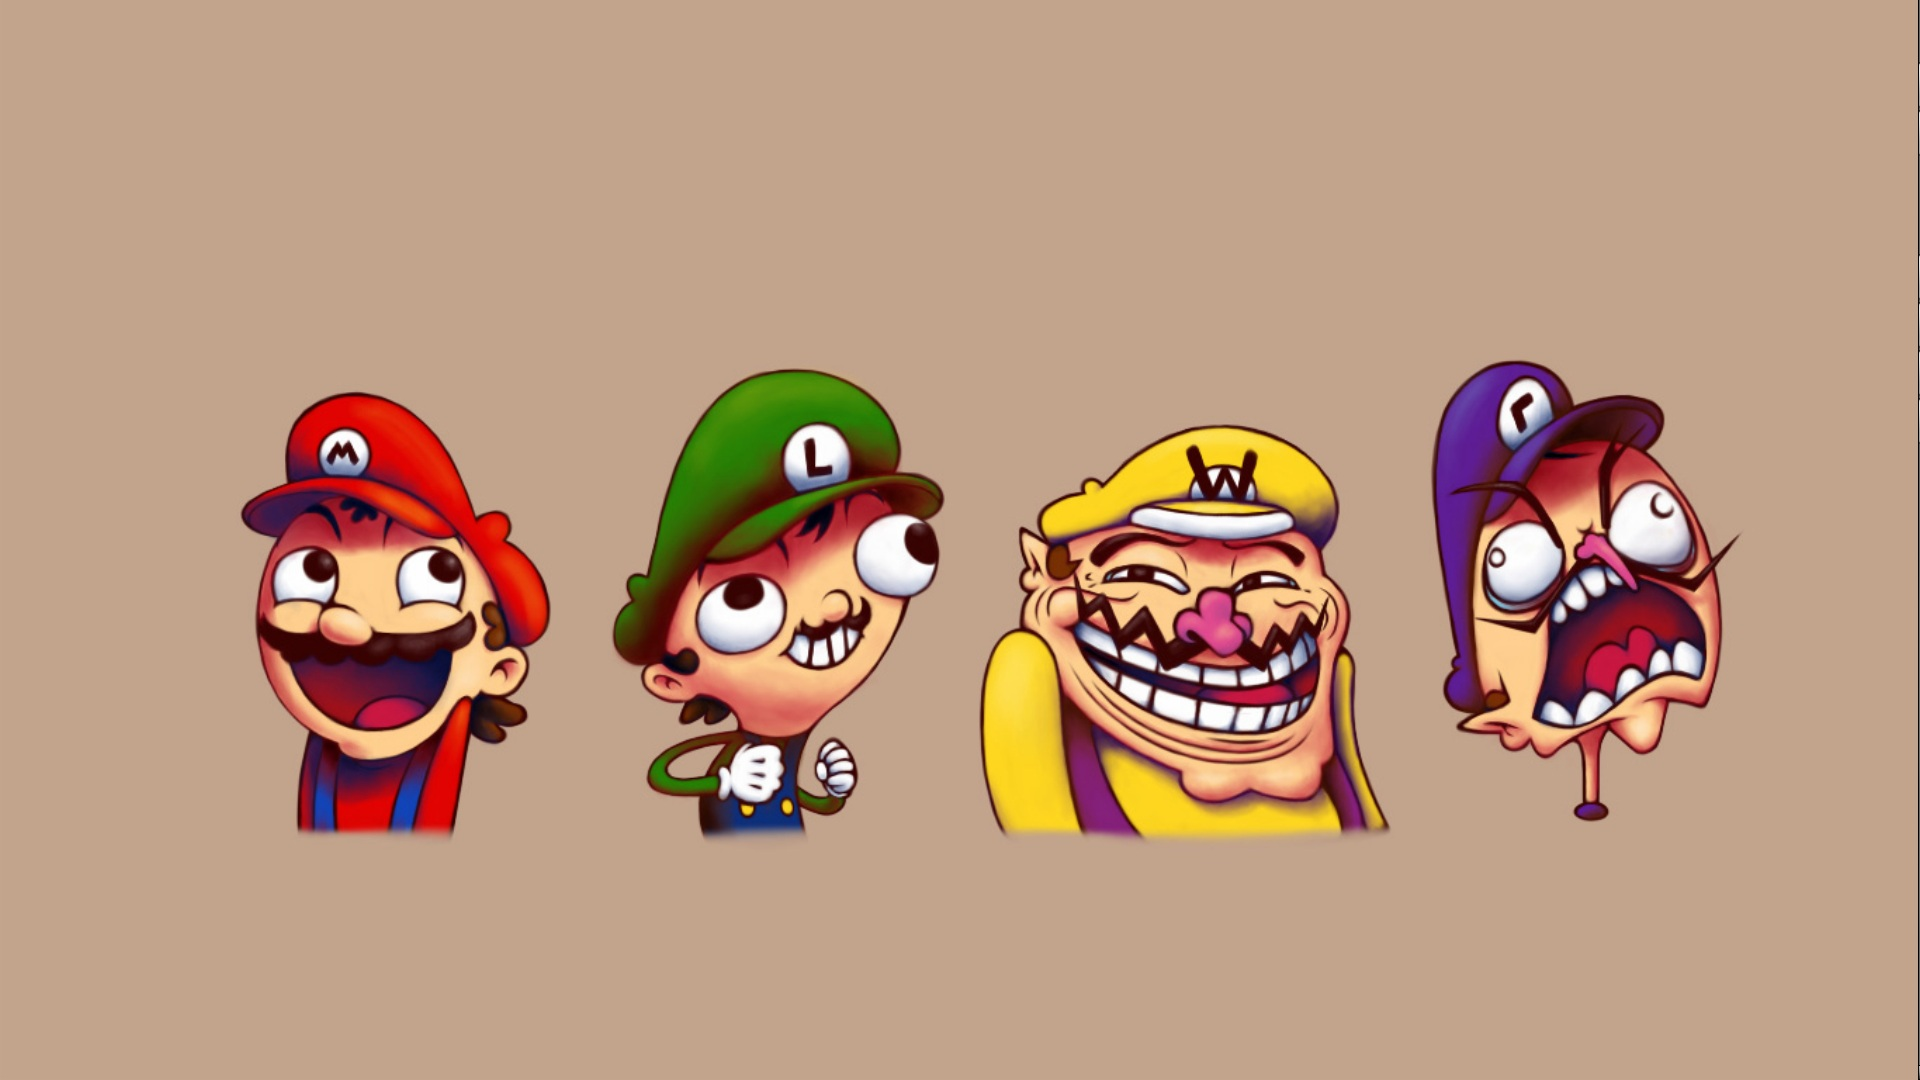 Funny Meme Iphone Wallpapers : Mario bro's full hd wallpaper and background image 1920x1080 id